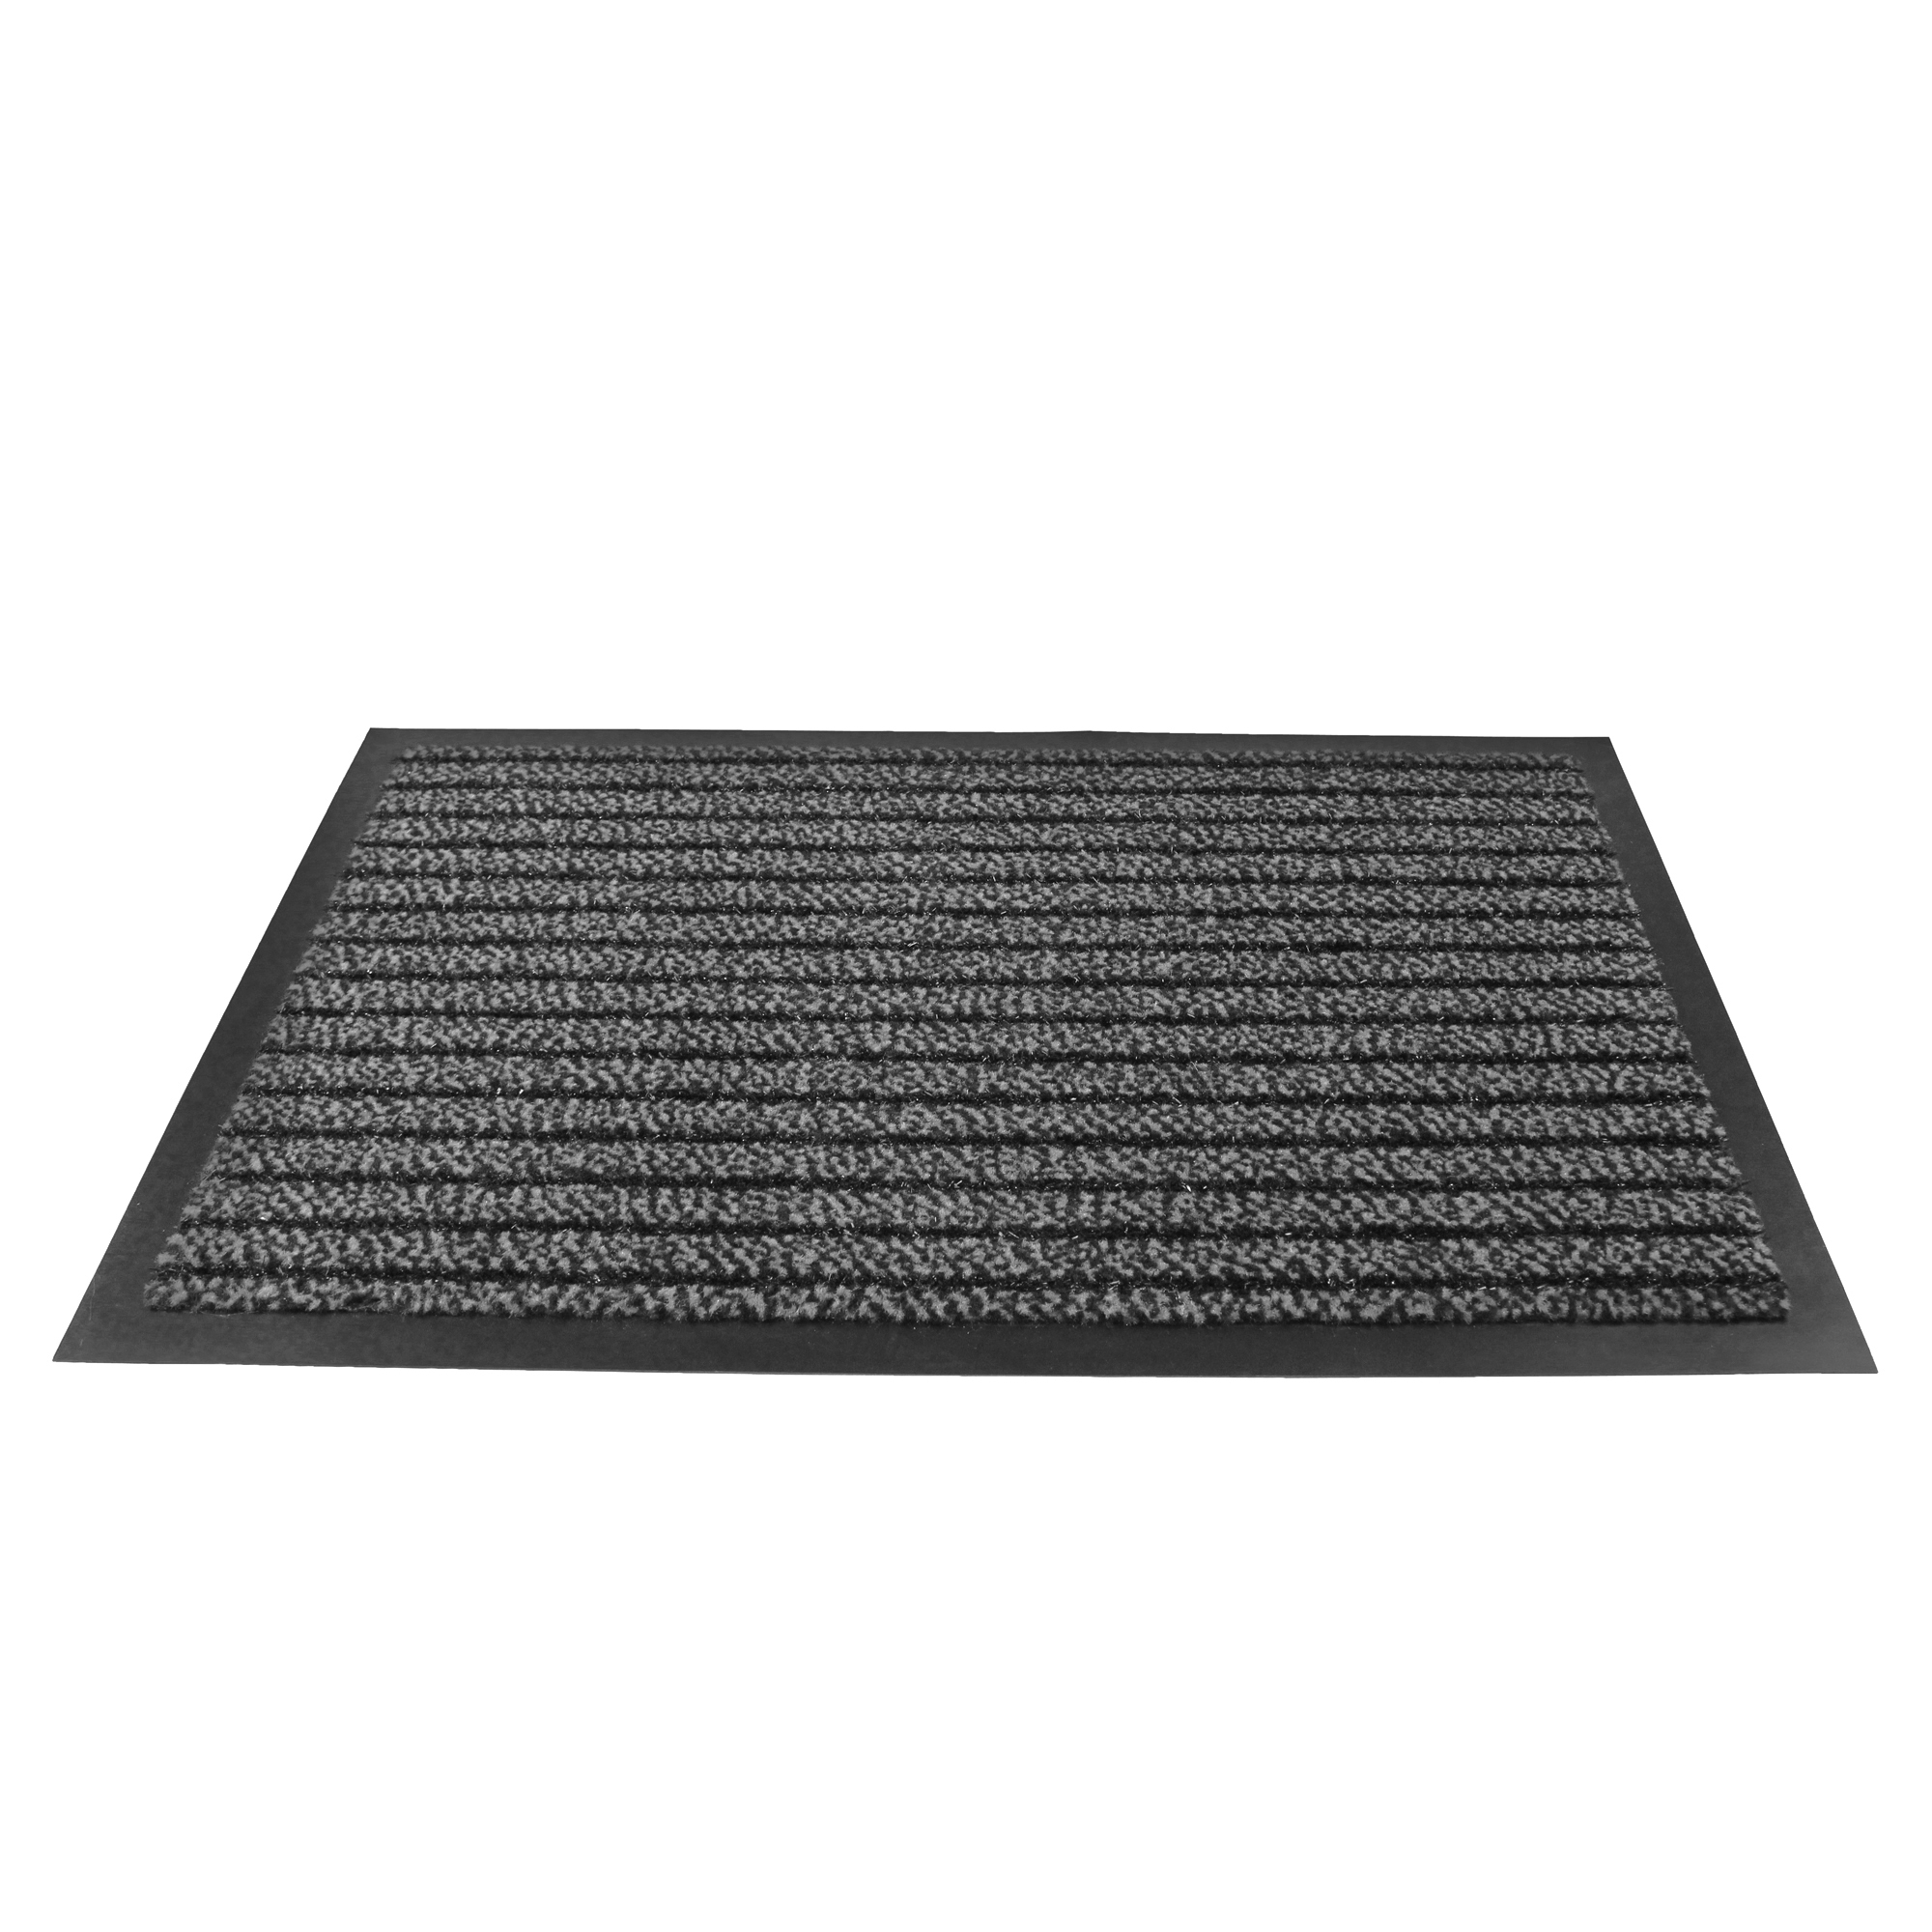 Indoor Doortex Ultimat Entrance Mat Indoor Use Nylon Monofilaments 1200x1800mm Grey Ref FC4120180ULTGR